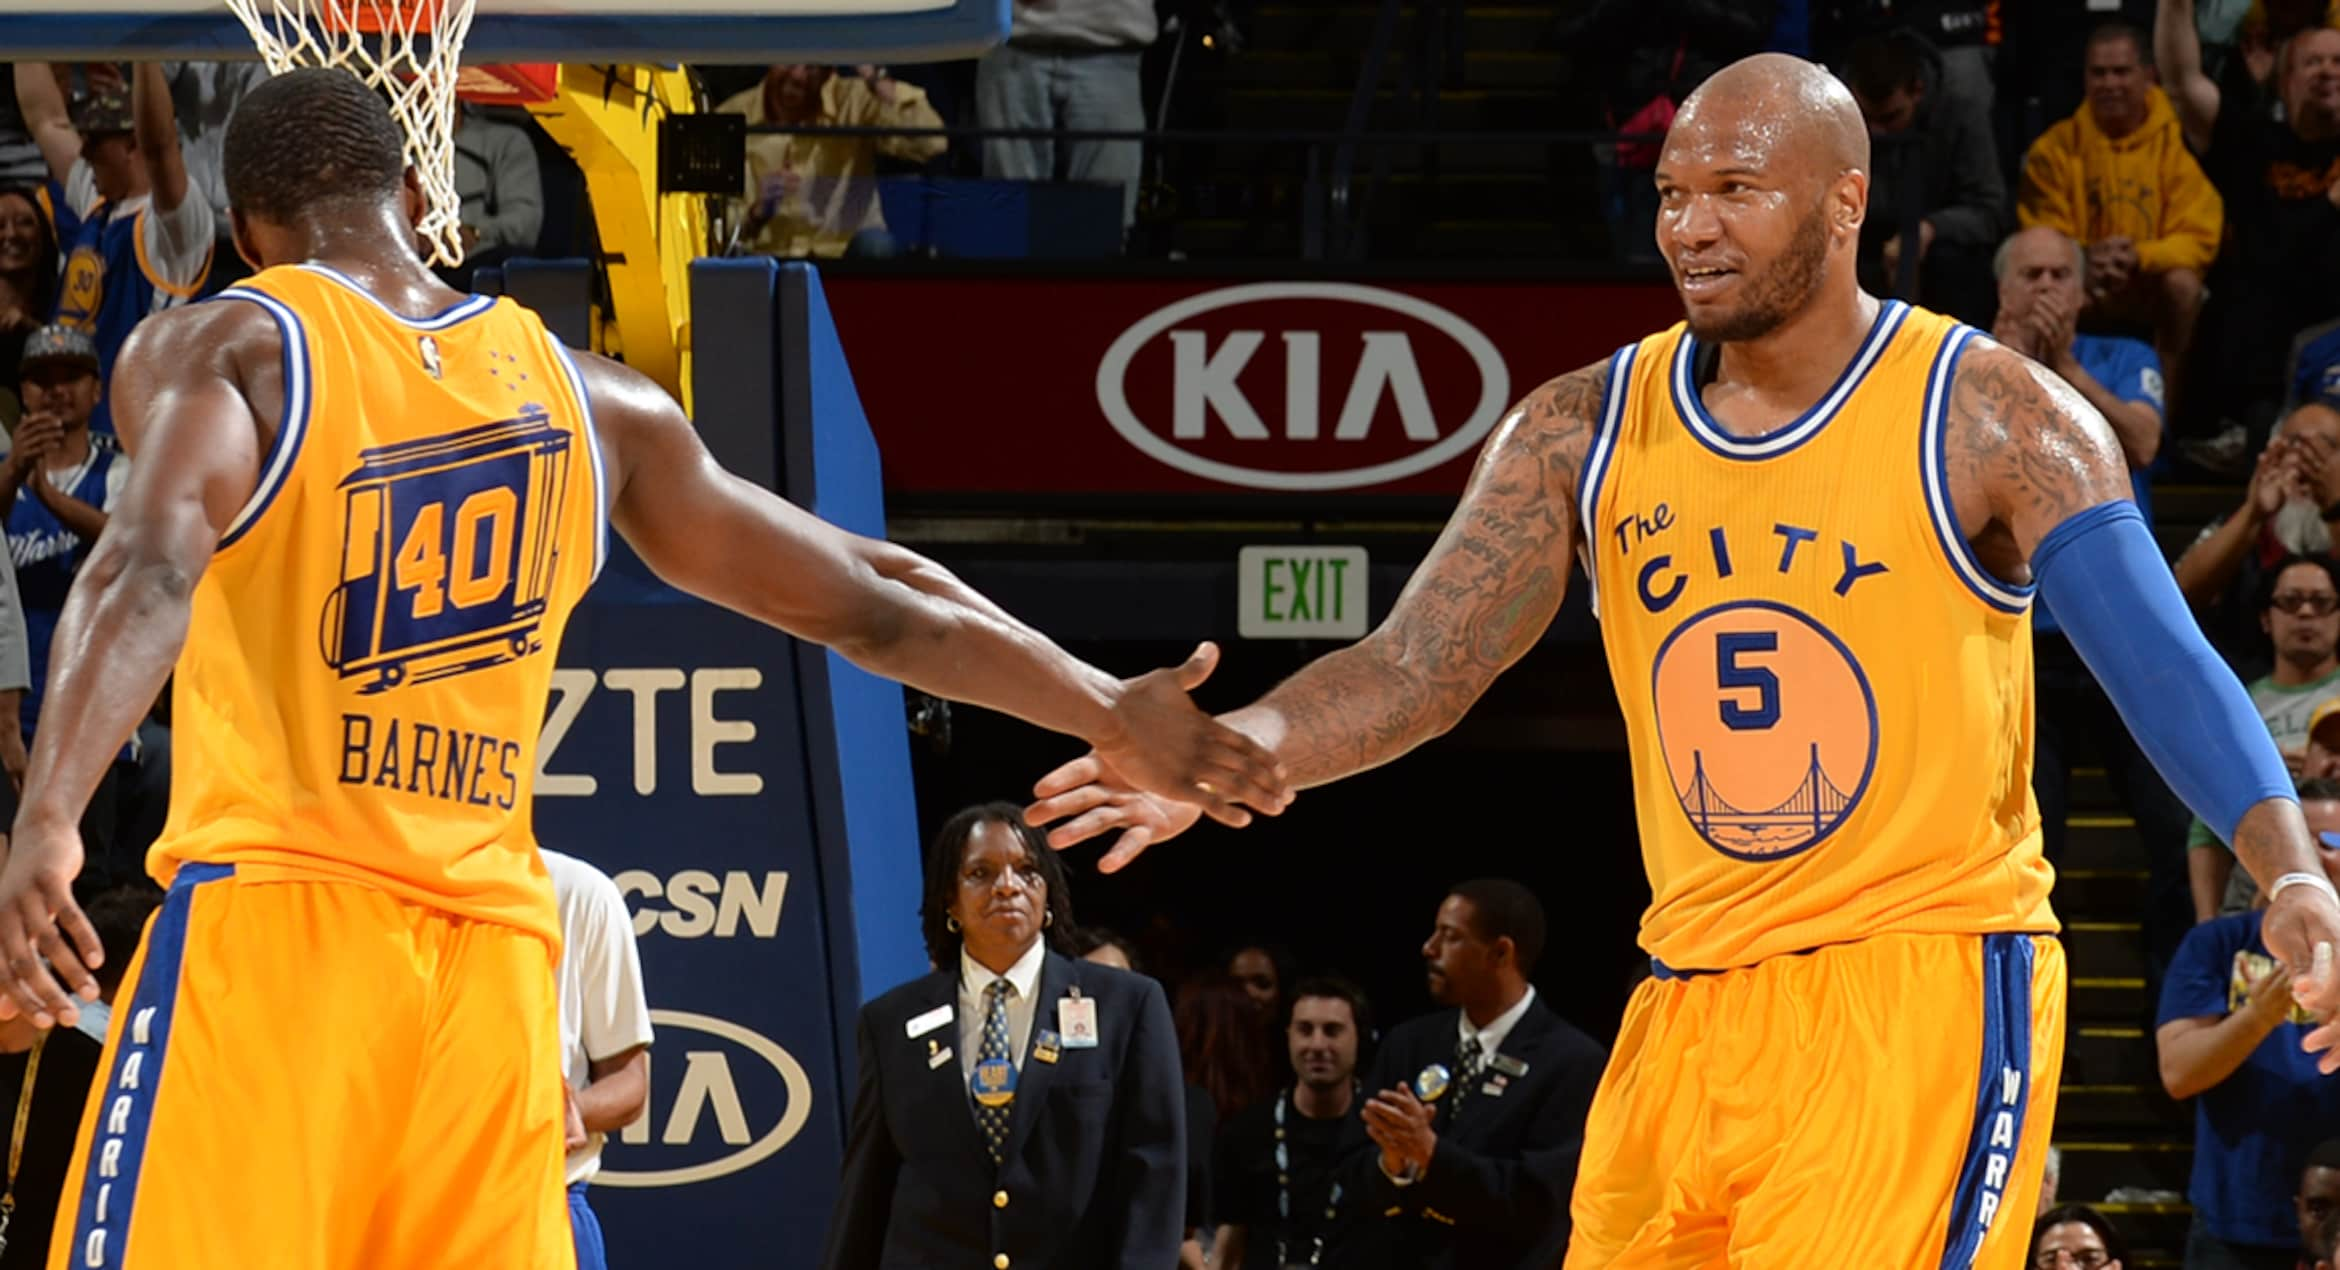 Marreese Speights and Harrison Barnes